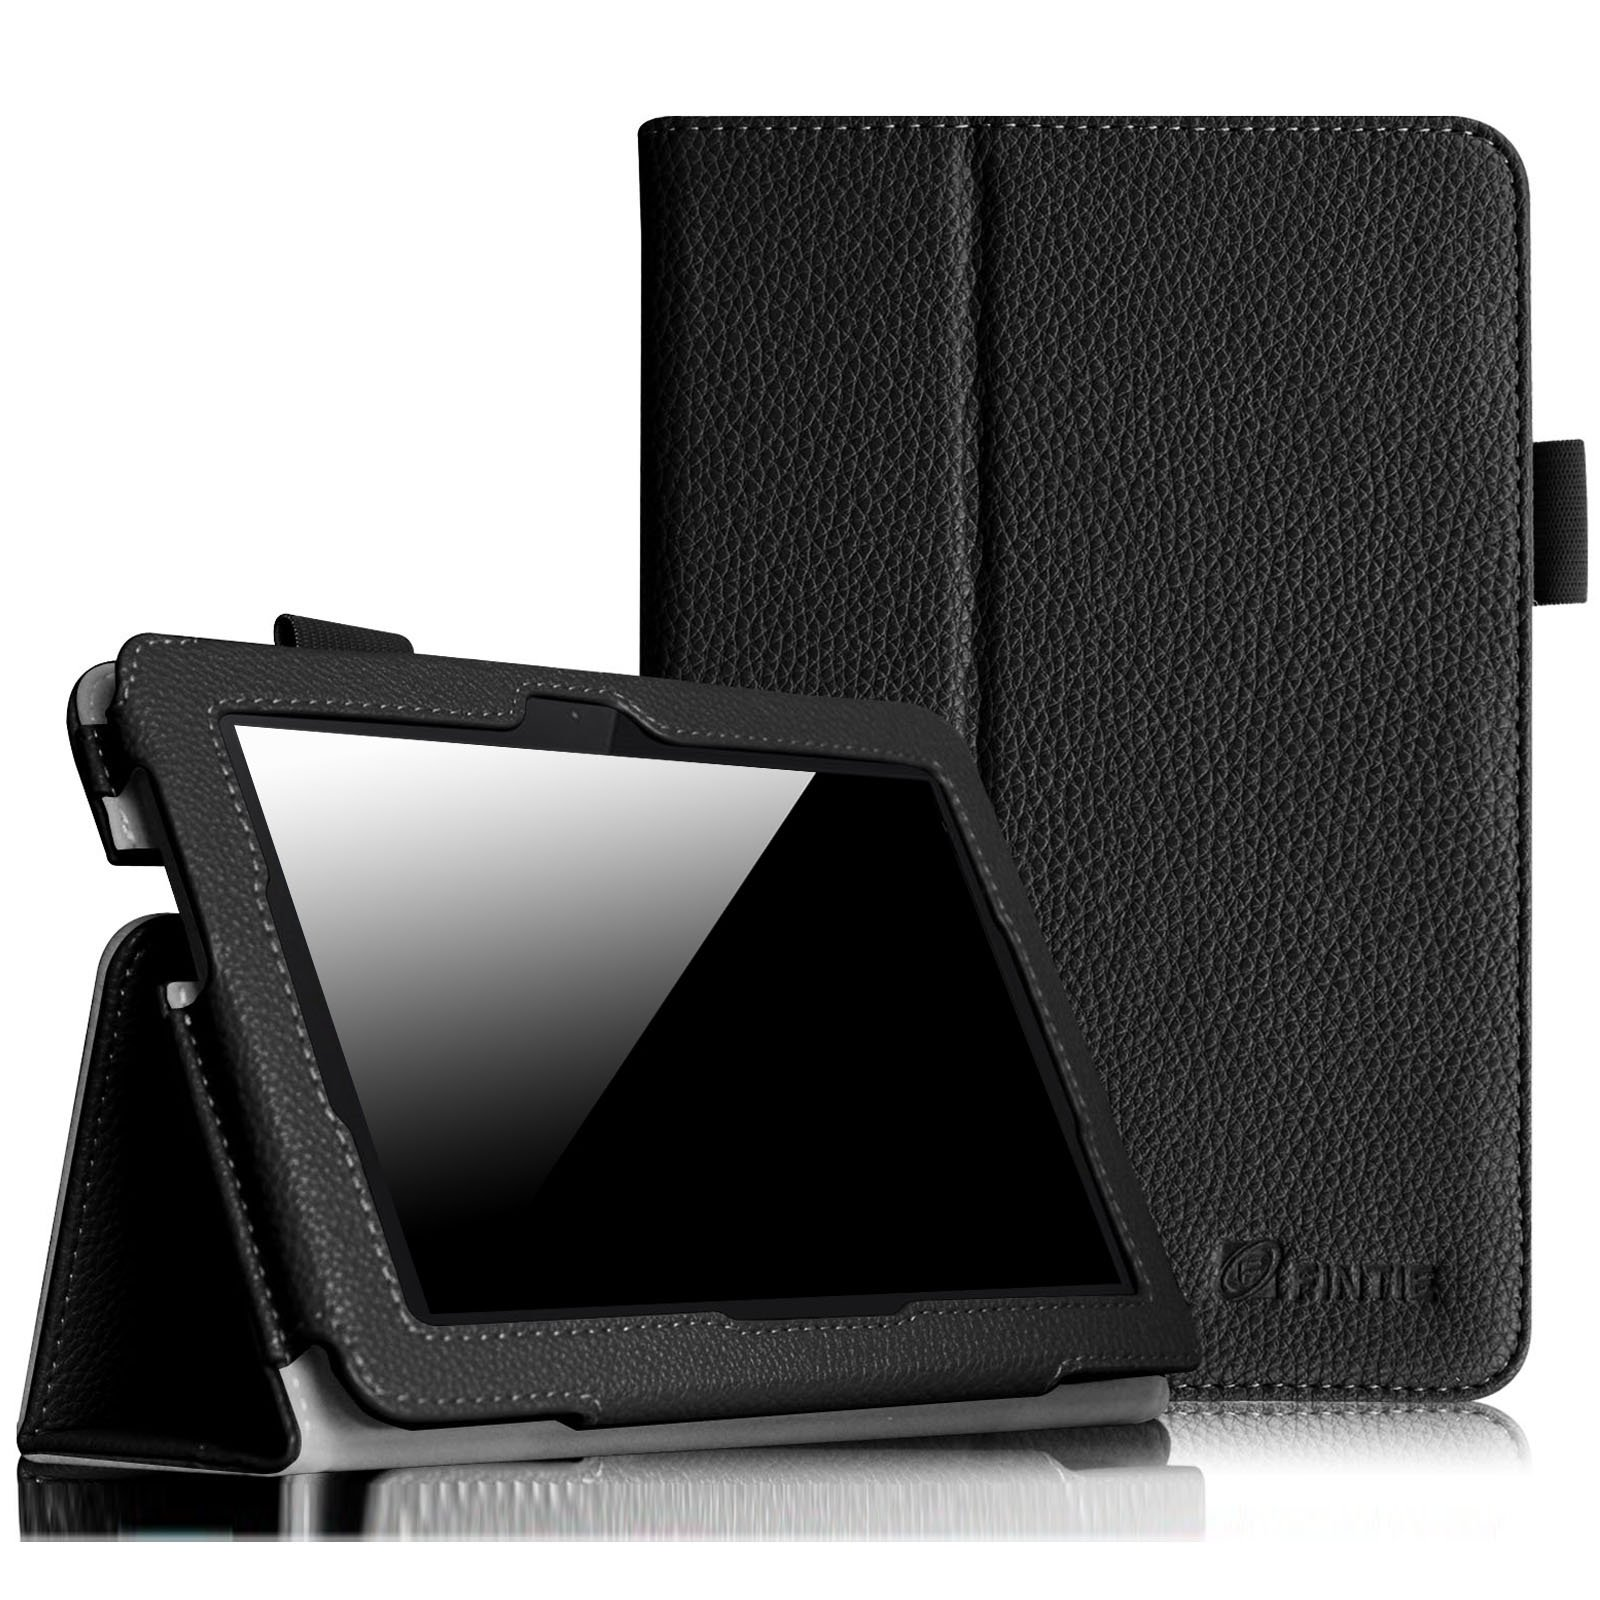 Fintie Folio Case for Fire HDX 7 - Slim Fit Leather Standing Protective Cover with Auto Sleep/Wake (will only fit Kindle Fire HDX 7'' 2013), Black